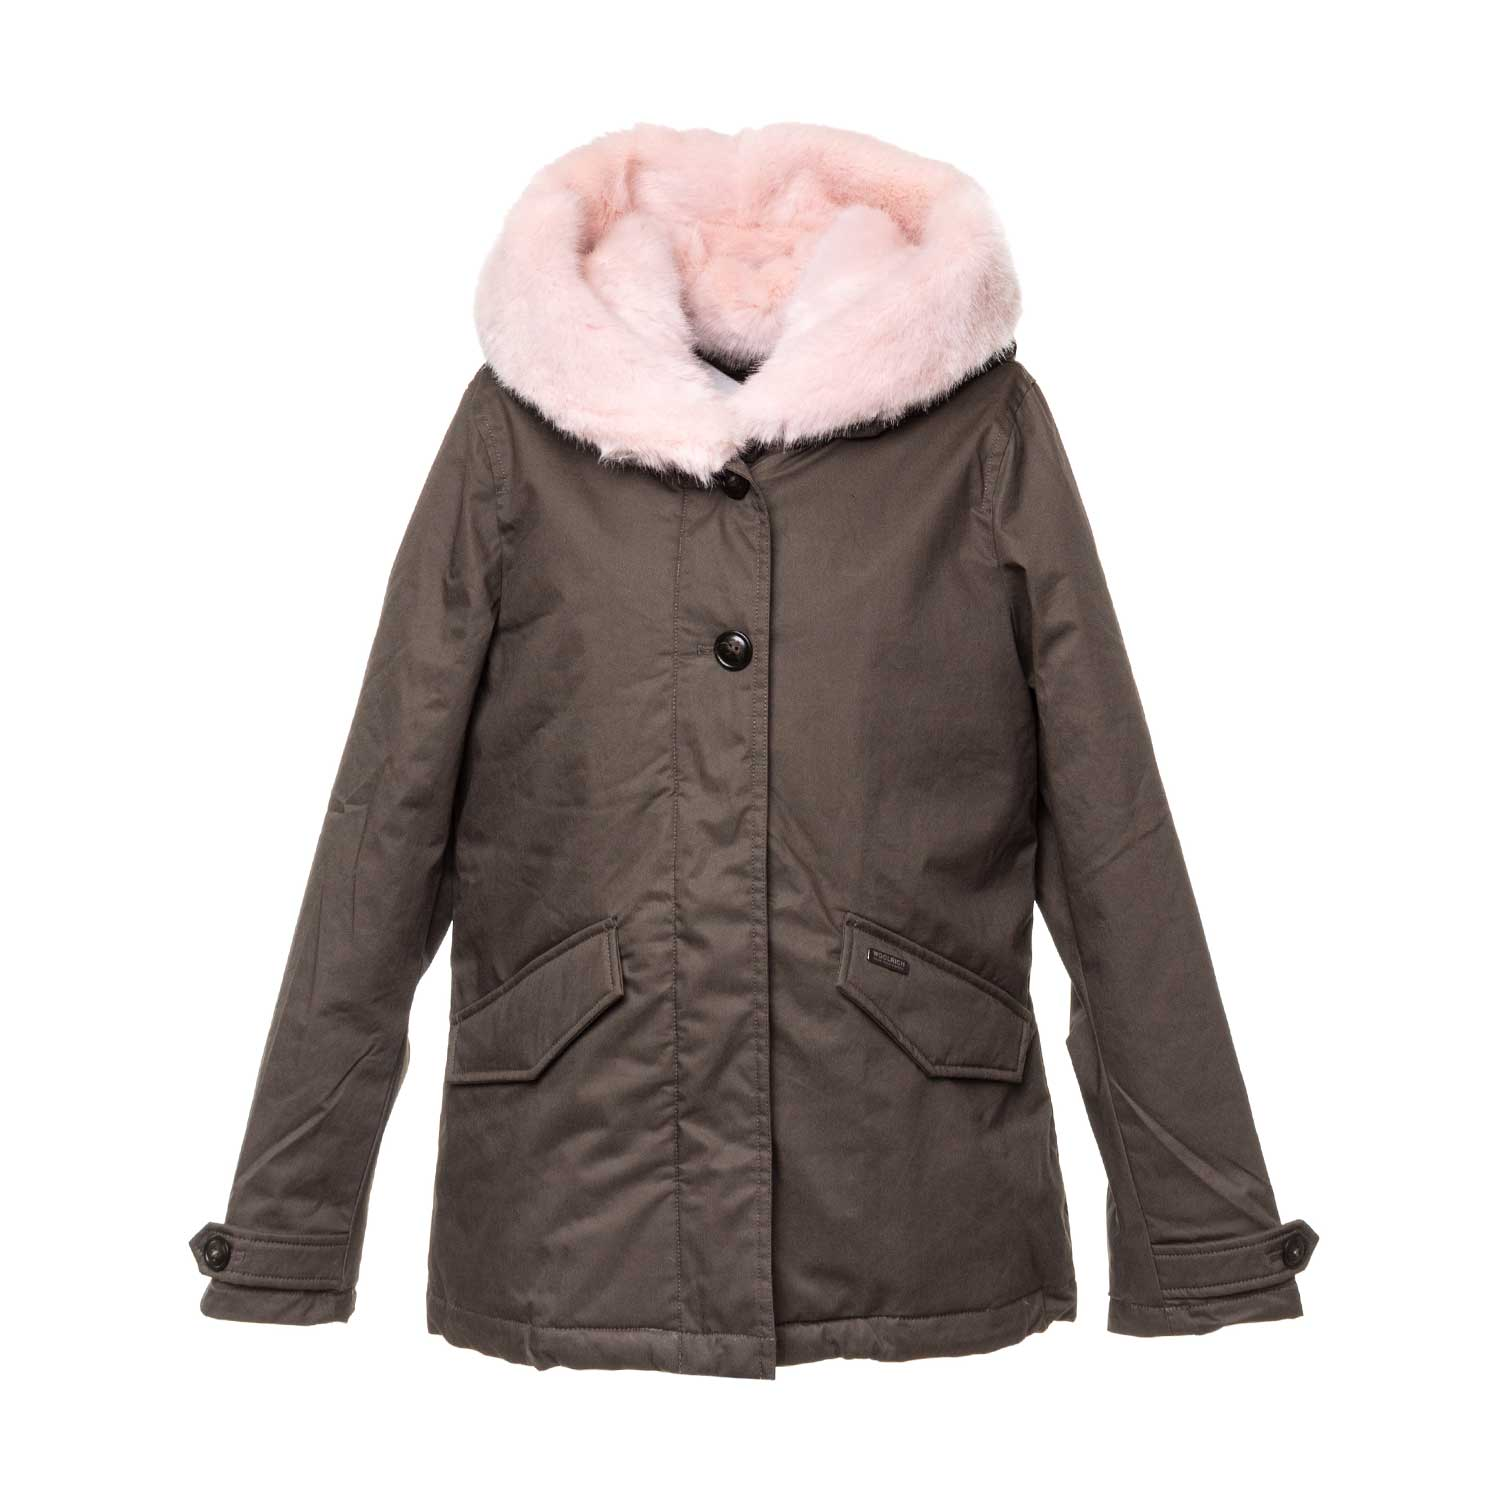 790b03053 Woolrich - Gs Cascade Coat For Girls - annameglio.com shop online